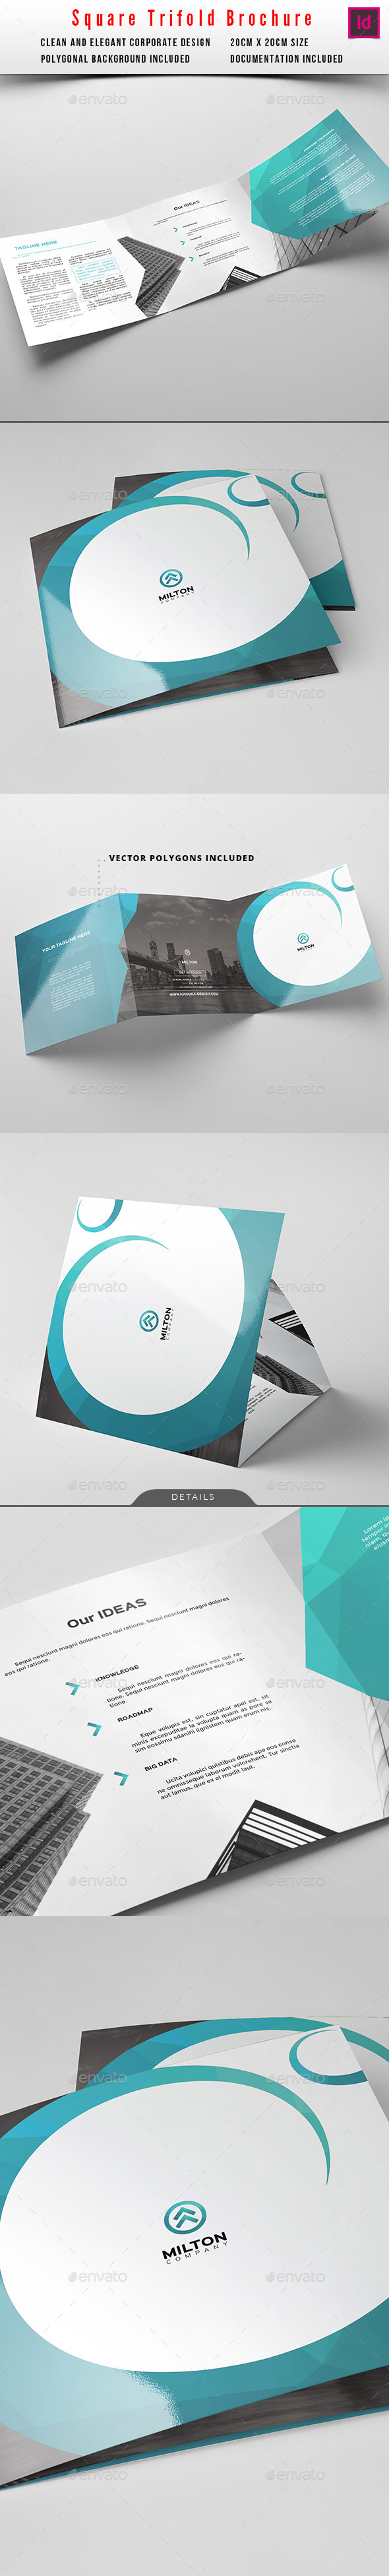 Square Trifold Business Brochure 3 - Corporate Brochures